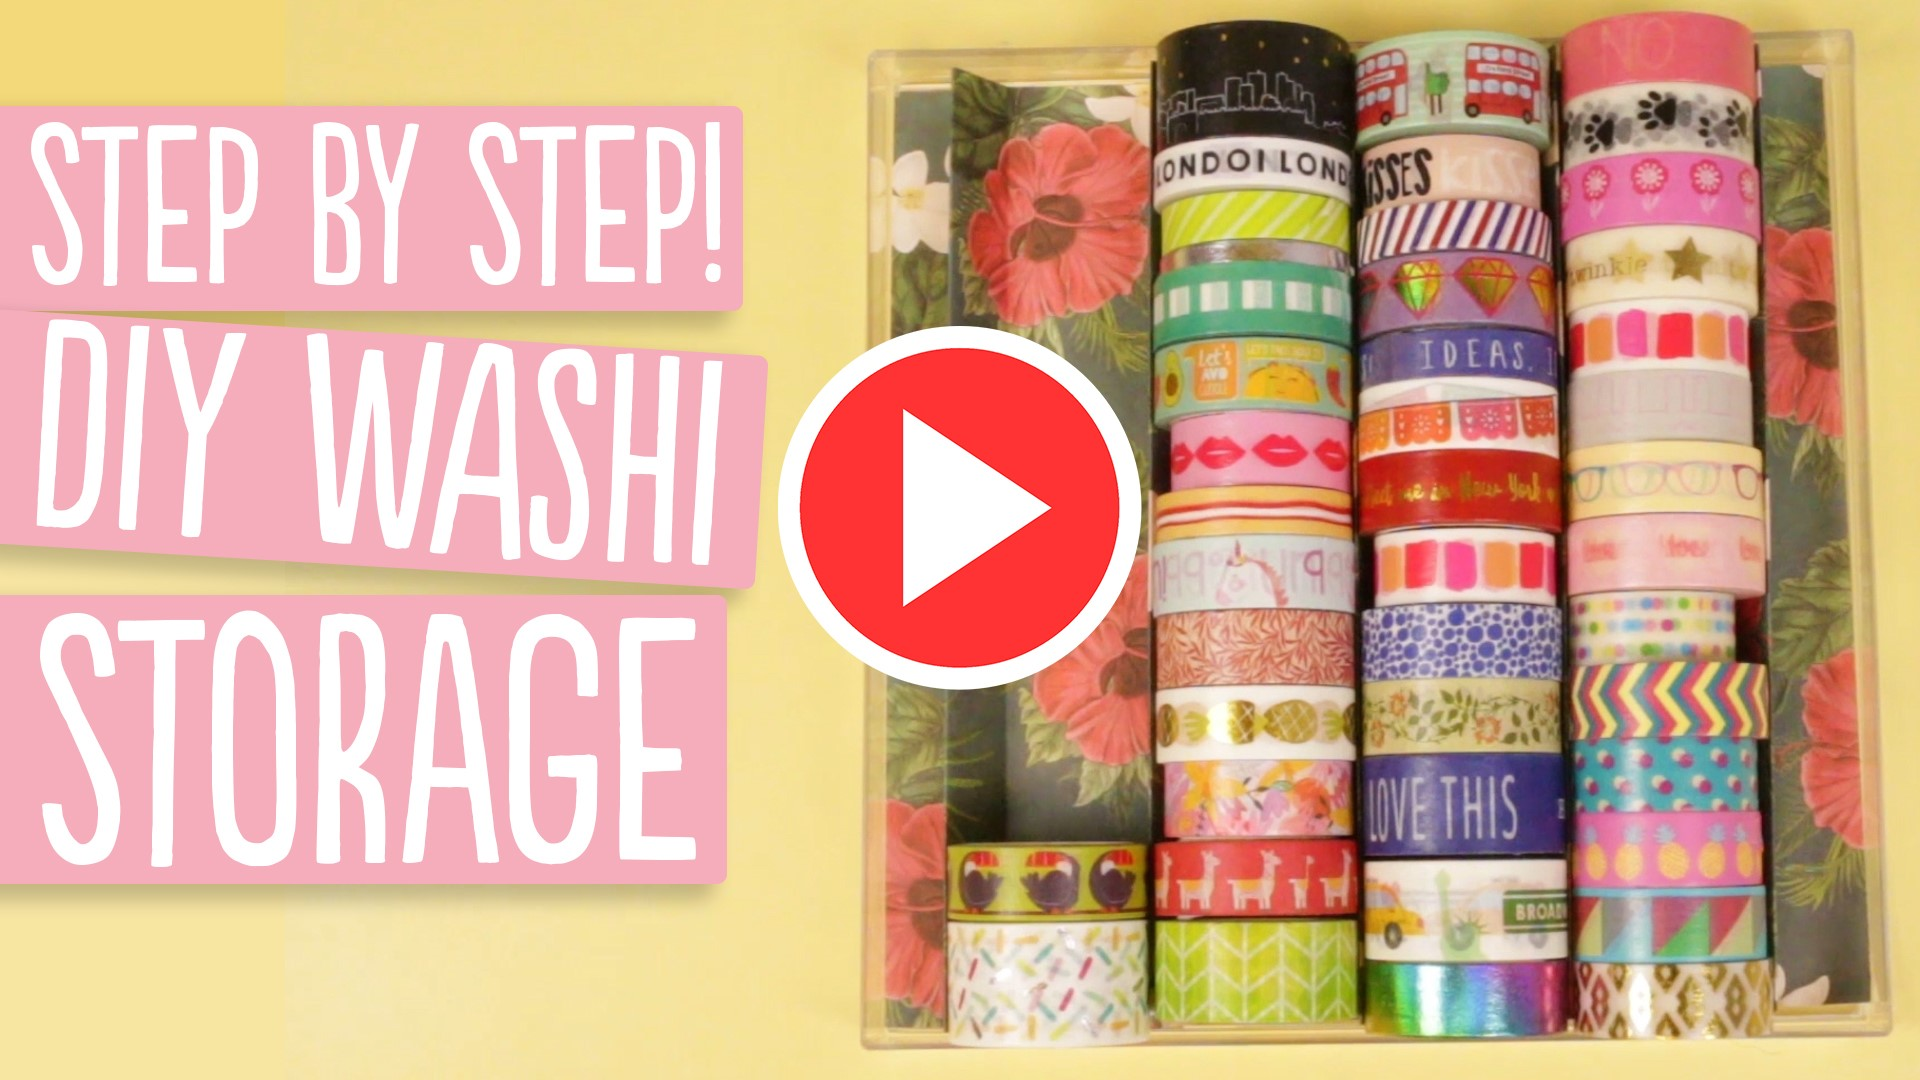 Washi-Storage-Thumbnail-April-2018.jpg